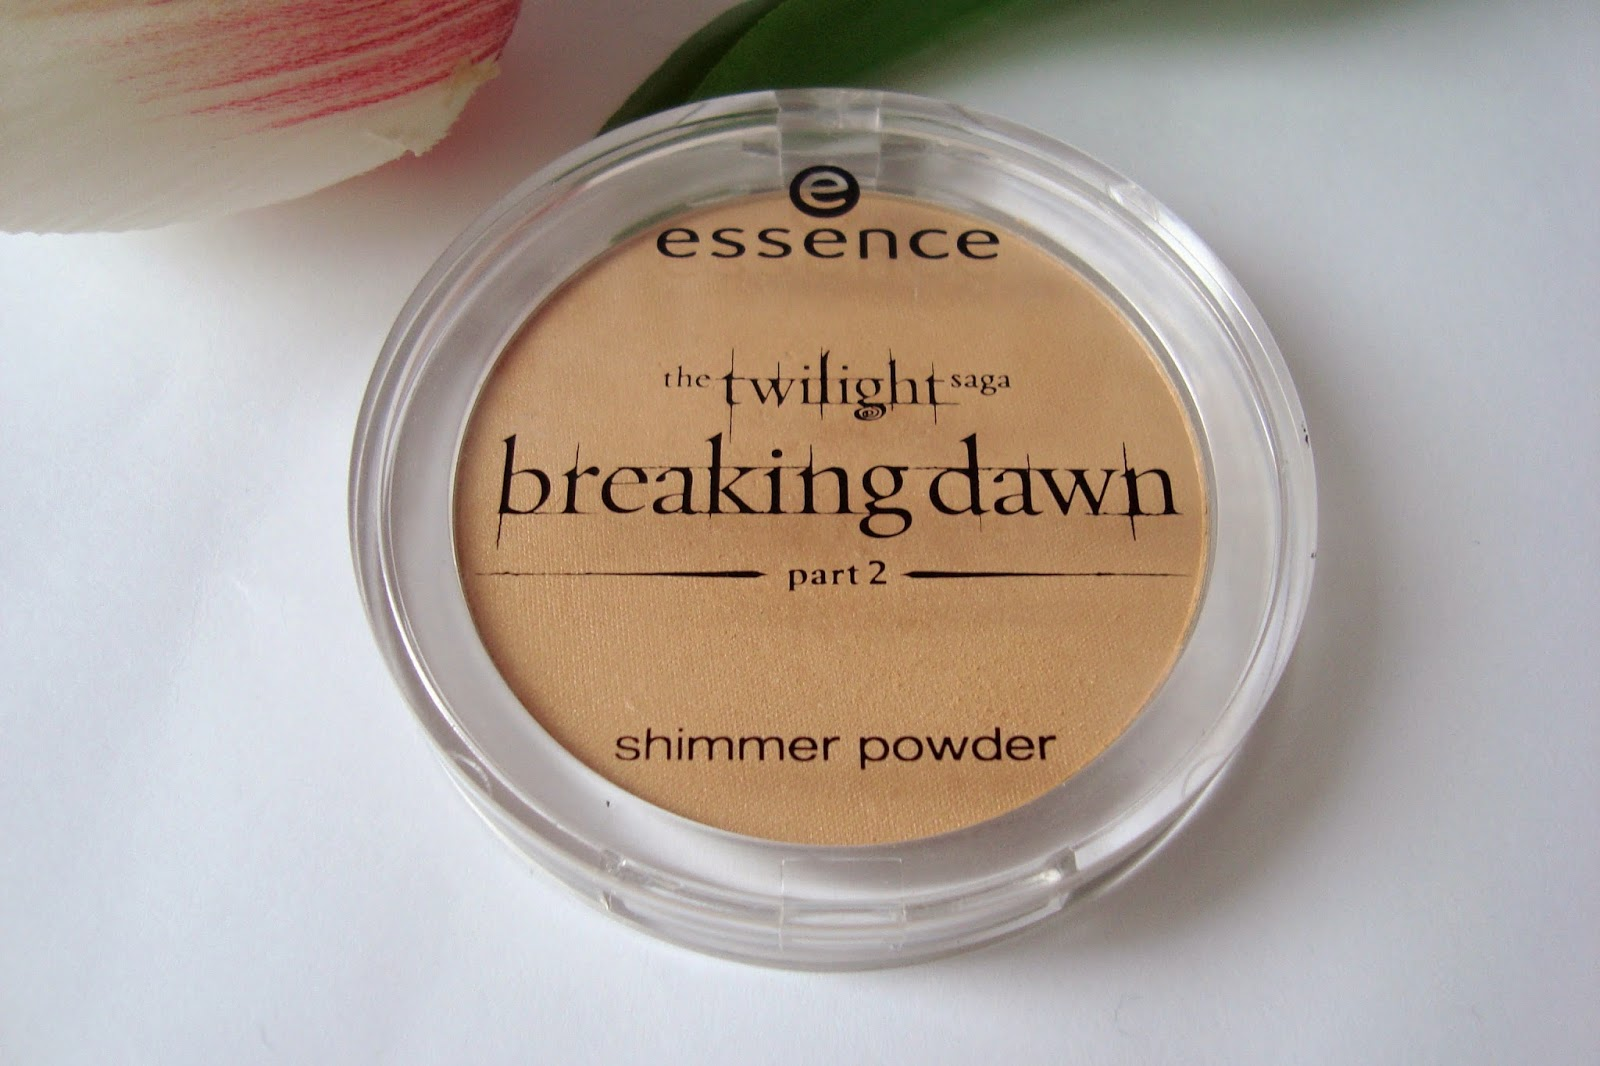 Essence Shimmer Powder review